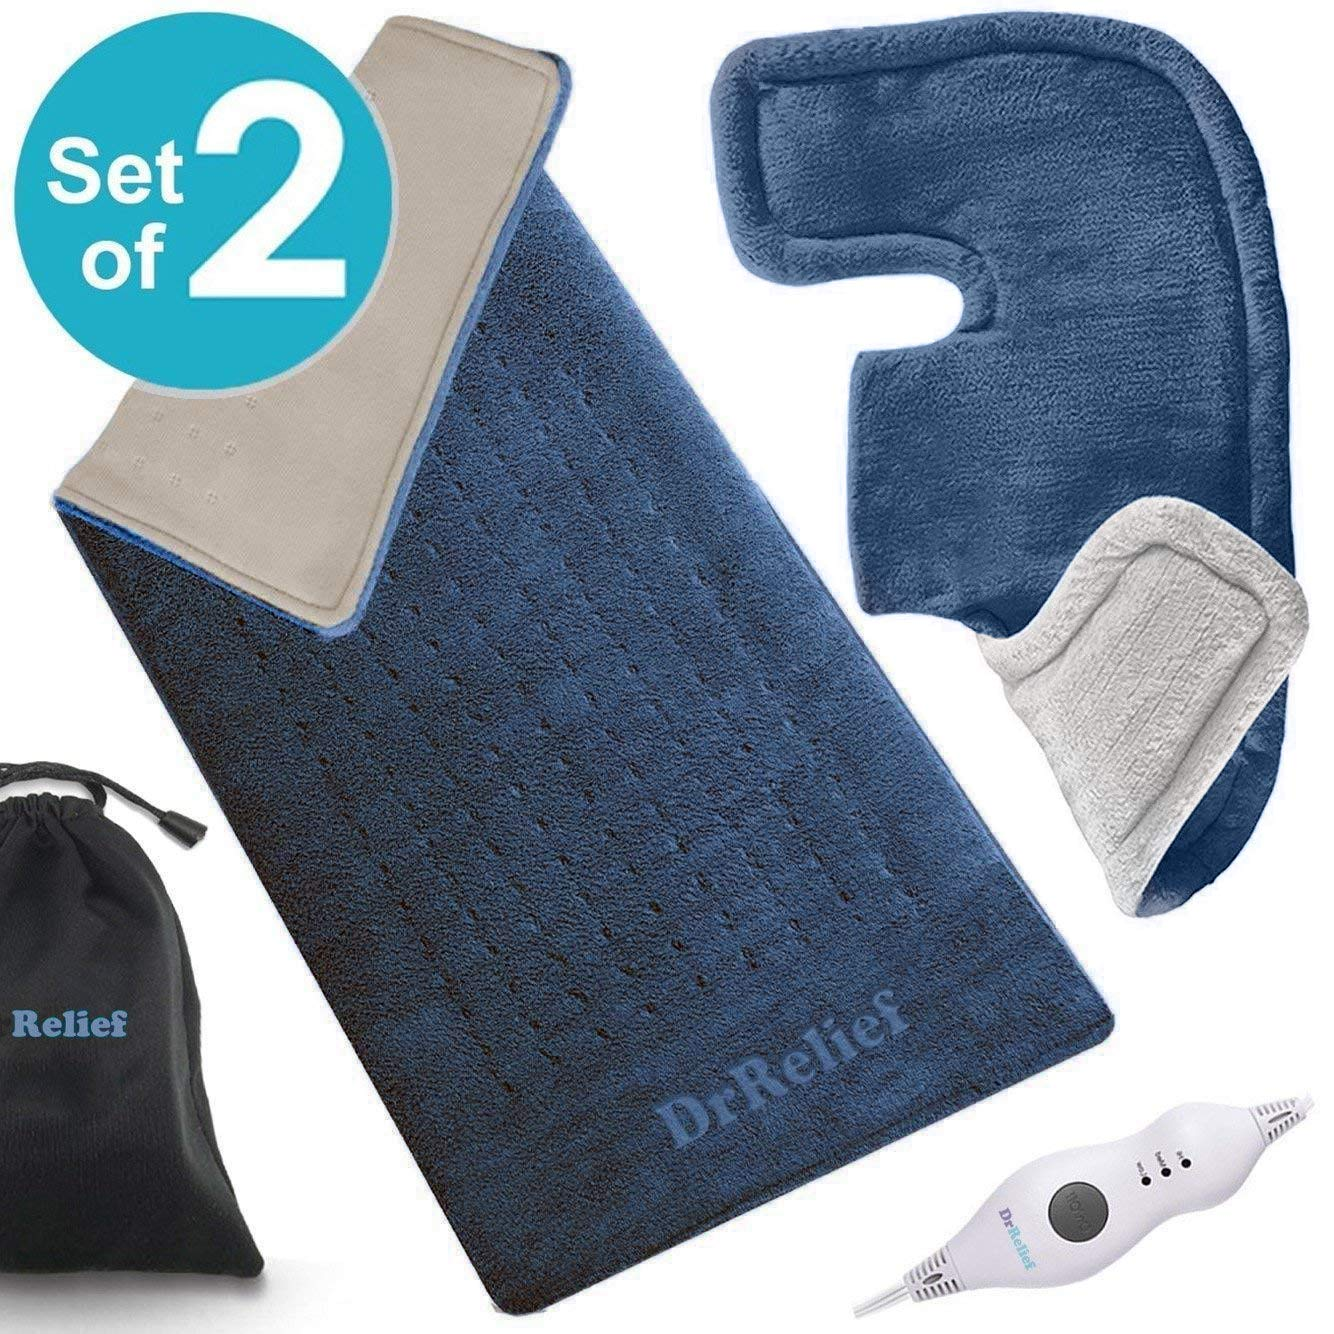 "Heating Pad Gift Set of 2 - King Size 18"" x 25"" Shoulder Heating Pad and 12"" x 24"" Fast Heating Wrap with Auto Shut Off for Back, Neck and Shoulder, Abdomen, Waist Pain Relief, Dry/Moist Option - NAVY"